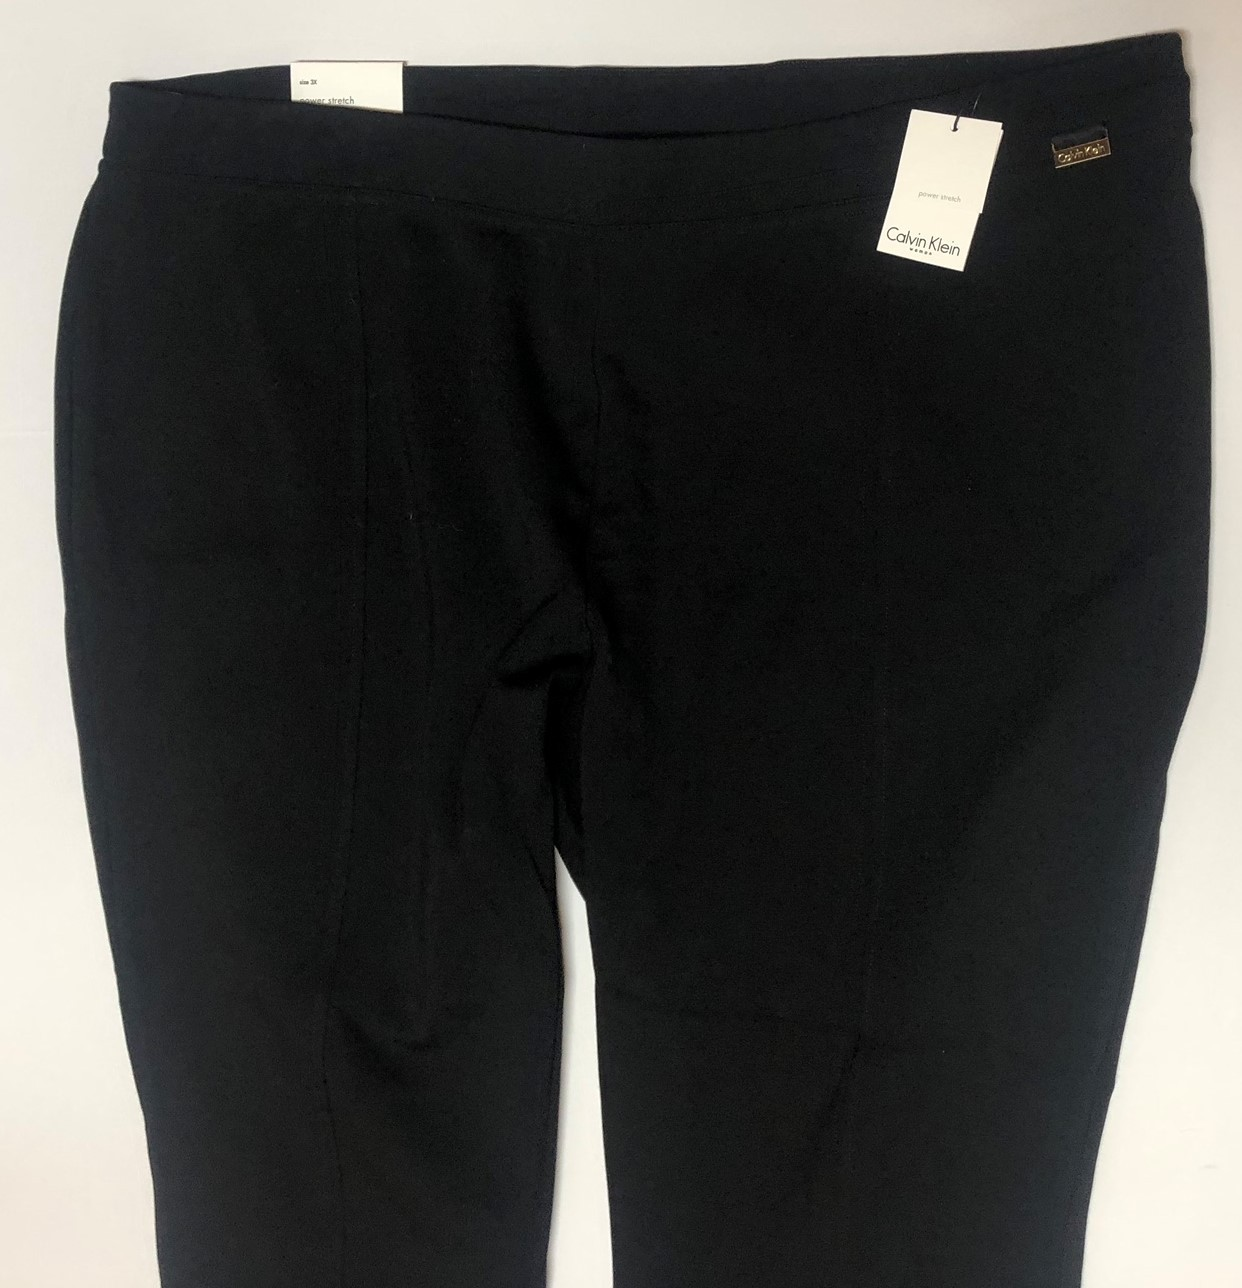 Calvin Klein Power Stretch Black Pants Women Sz 3X image 2